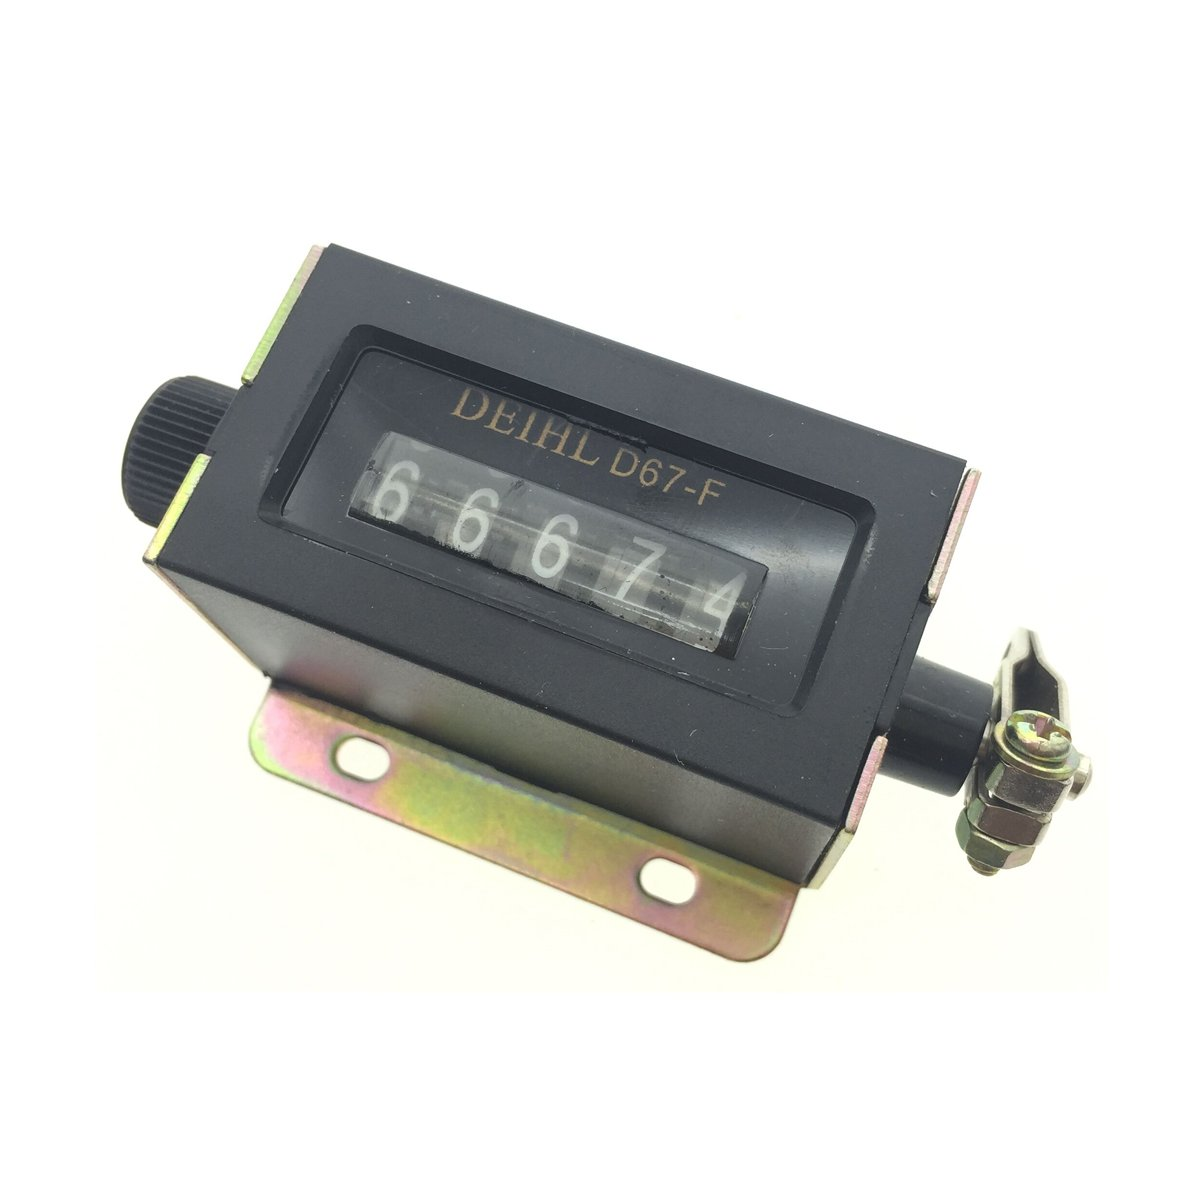 YXQ D67-F 5 Digits Resettable Mechanical Pulling Pull Counter